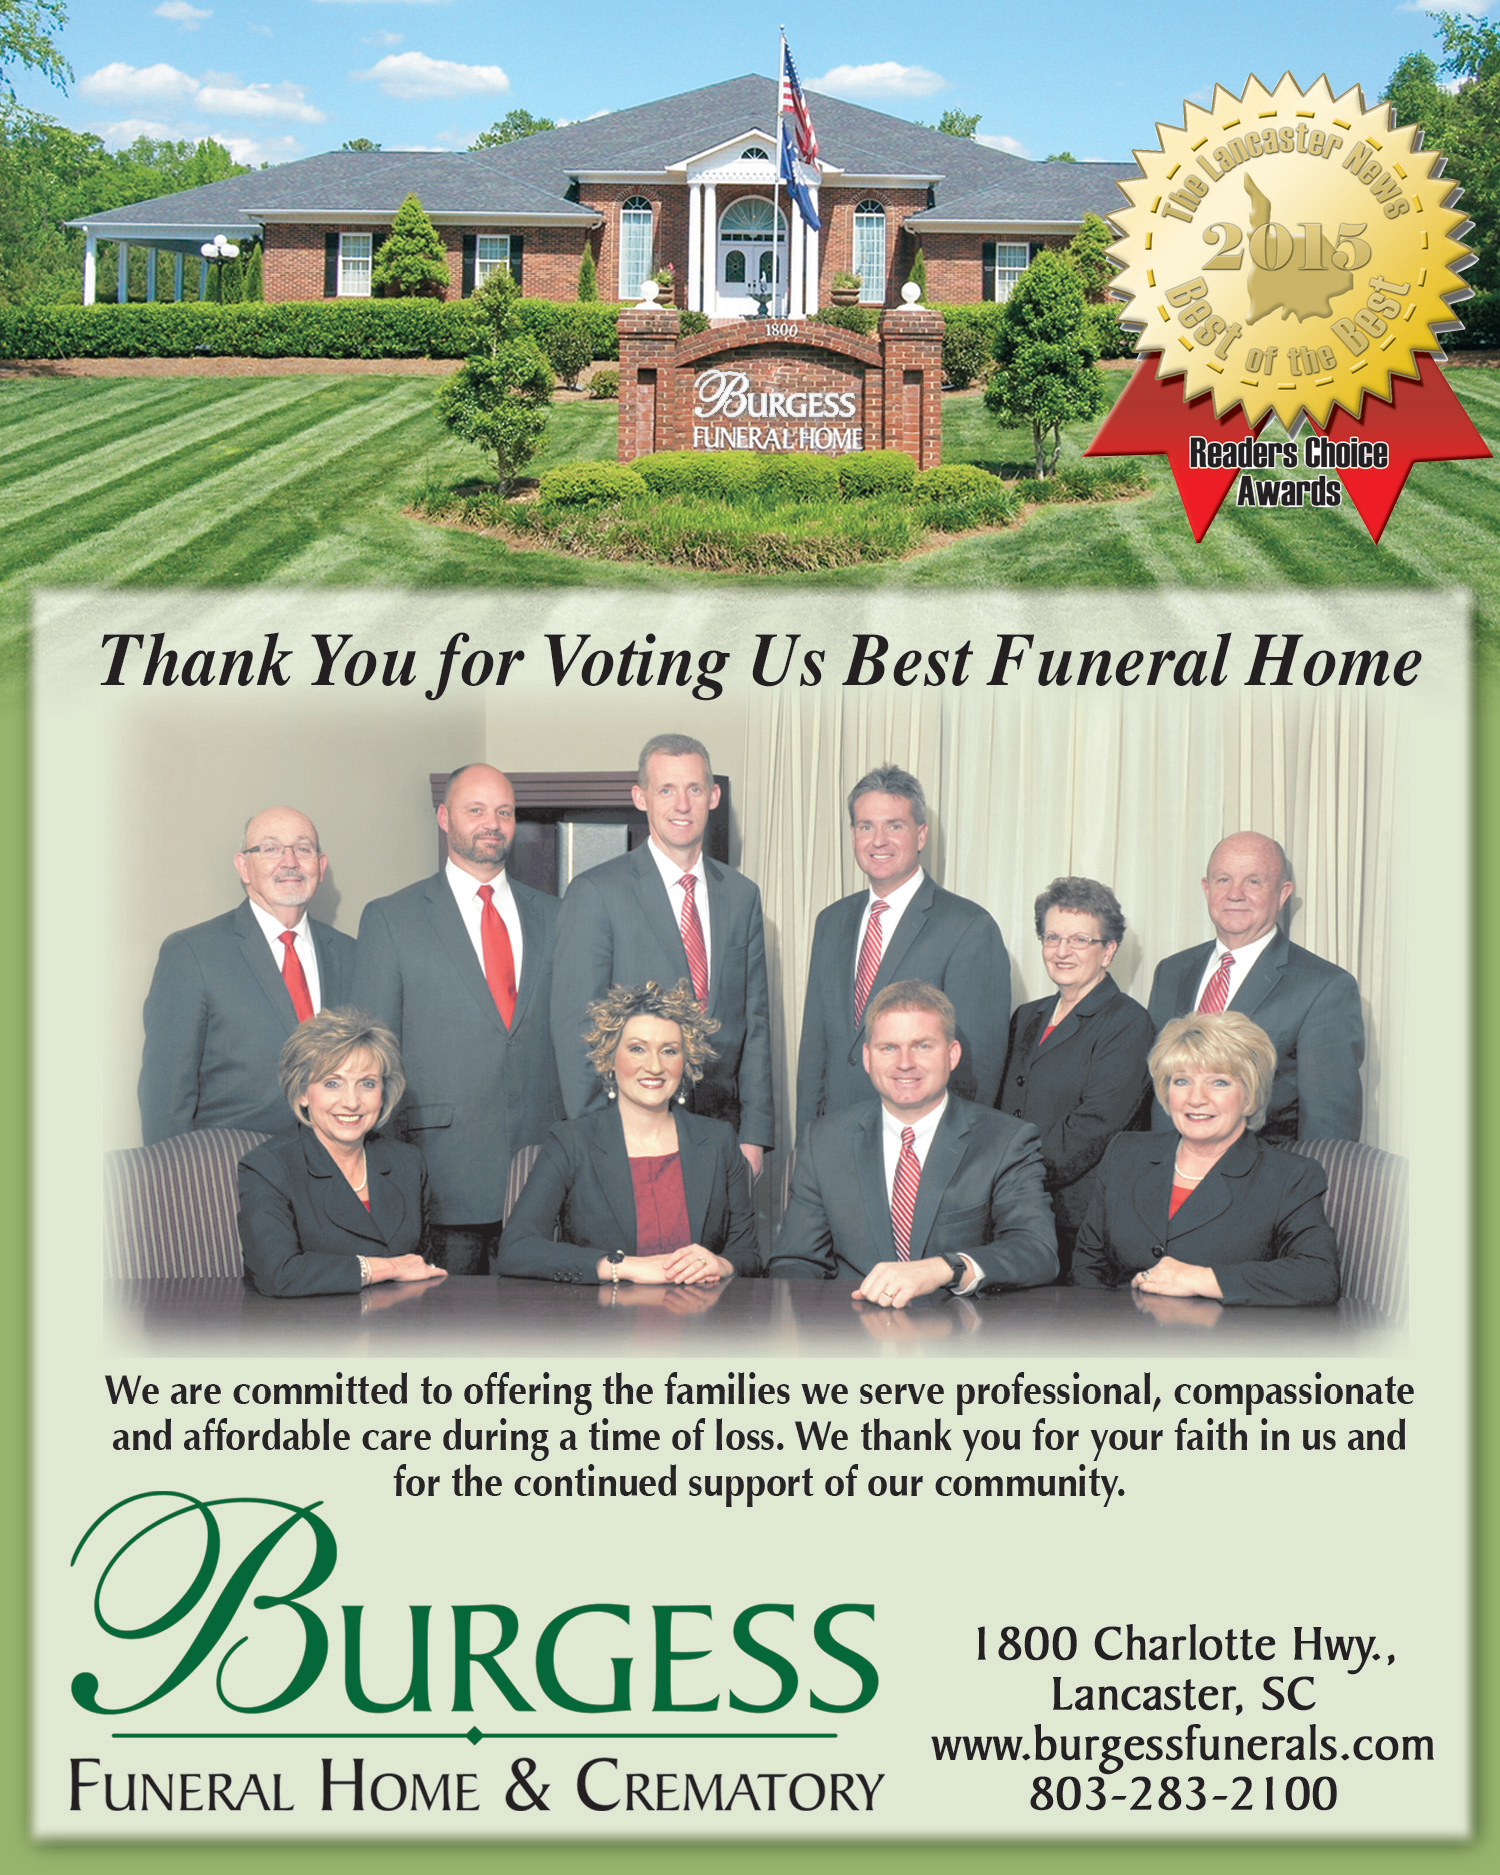 Thank you for Voting Us Best Funeral Home